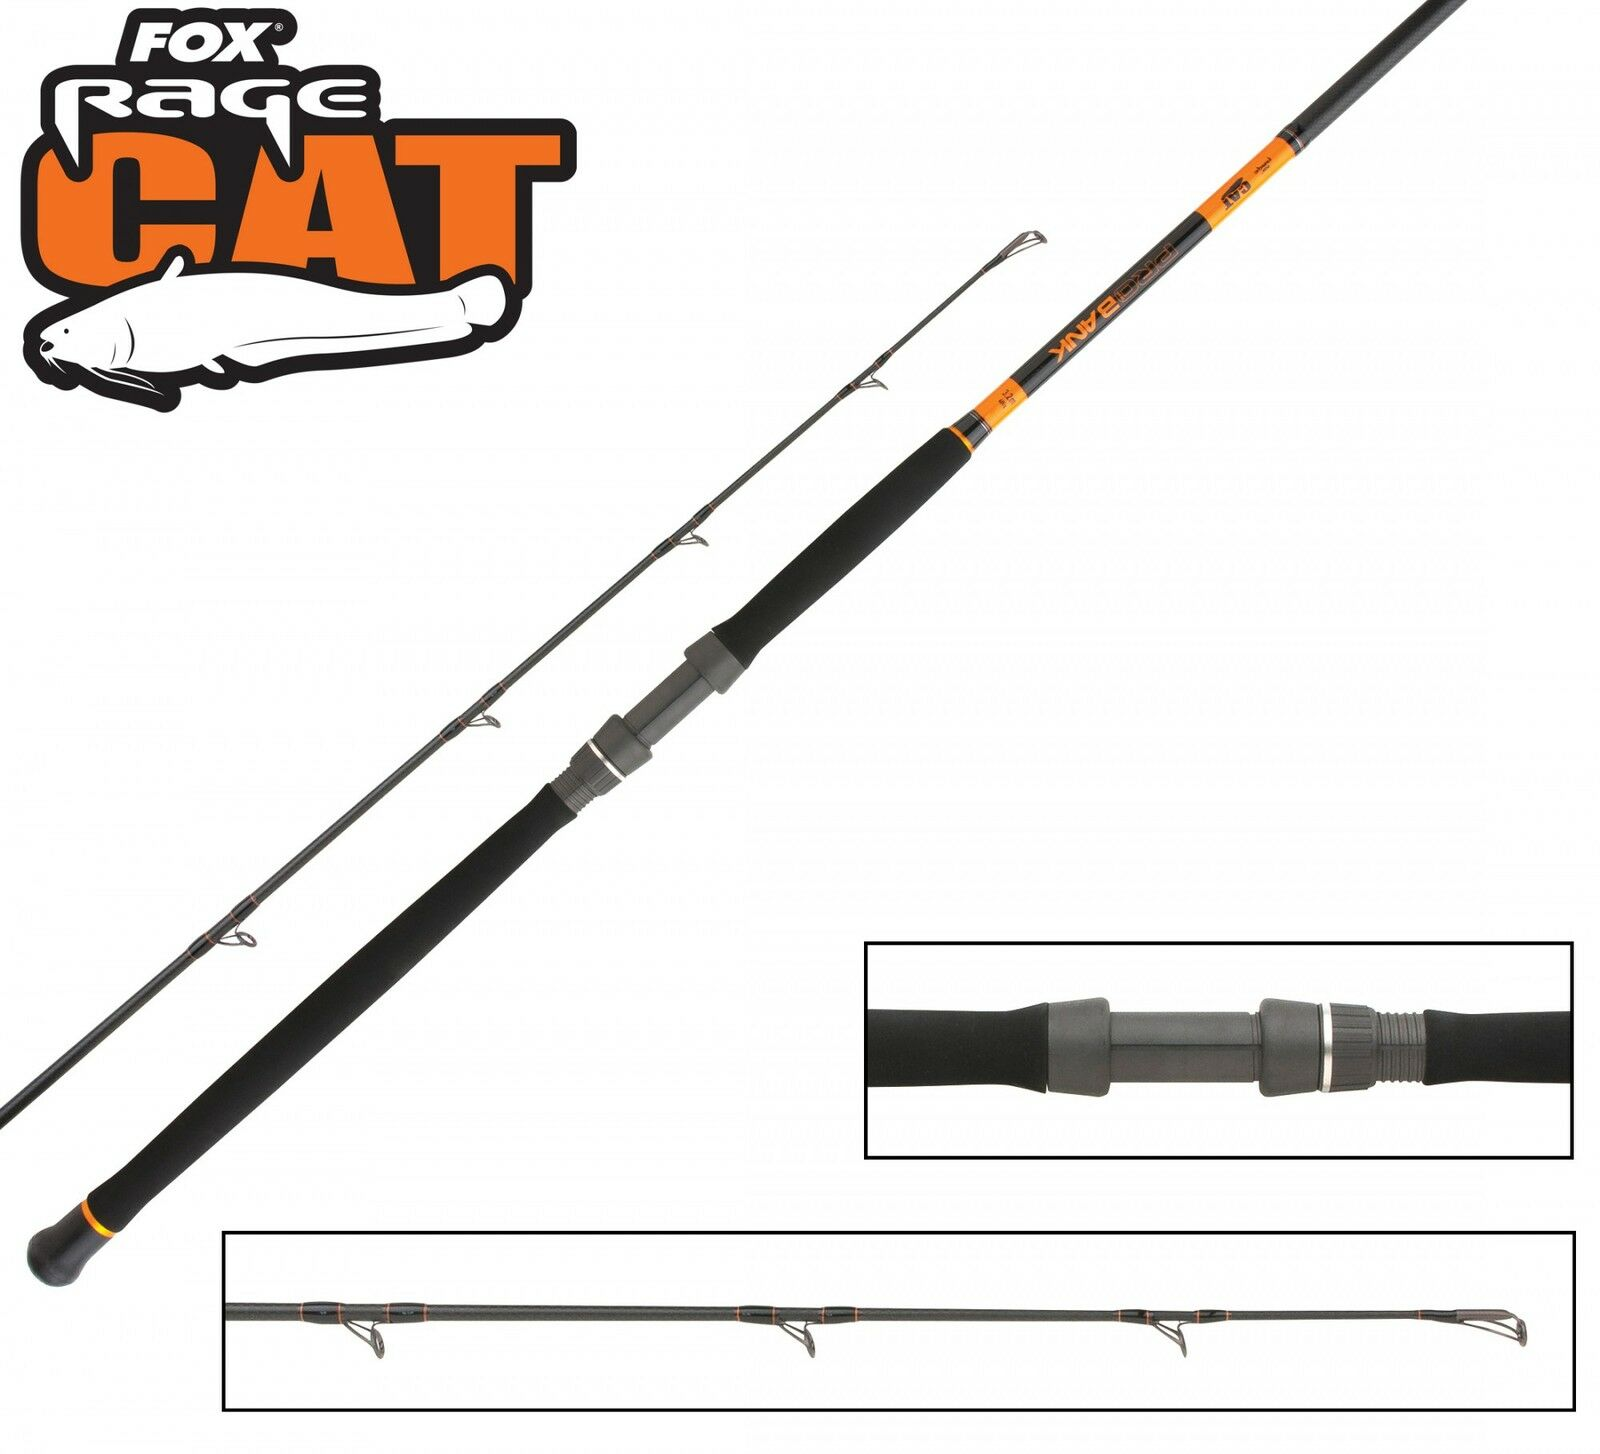 Fox Rage Welsrute Cat Pro Bank 320cm 400g Wallerruten, Welsrute Rage zum Abspannen a05d09